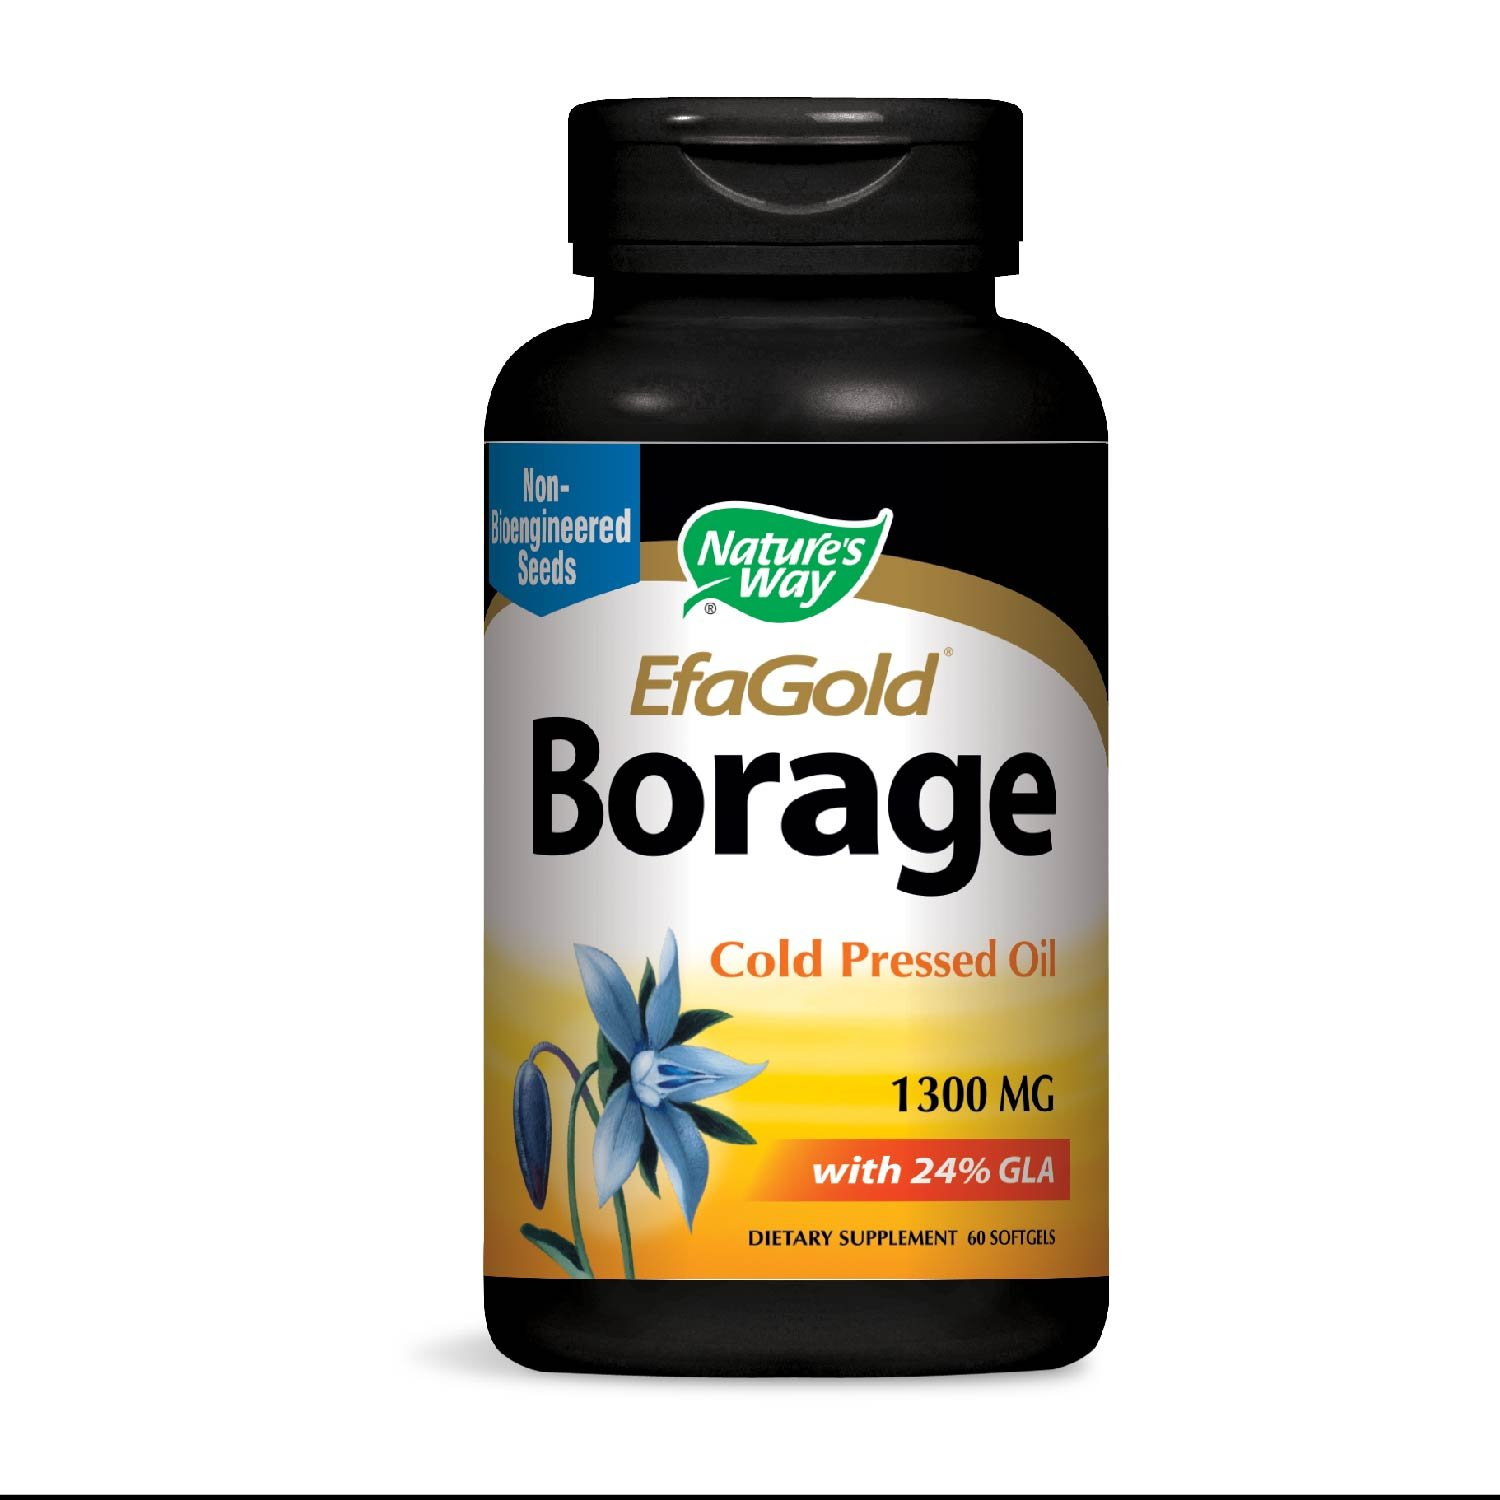 Nature's Way EfaGold Borage, Cold Pressed Oil 1300mg, 60 Softgels